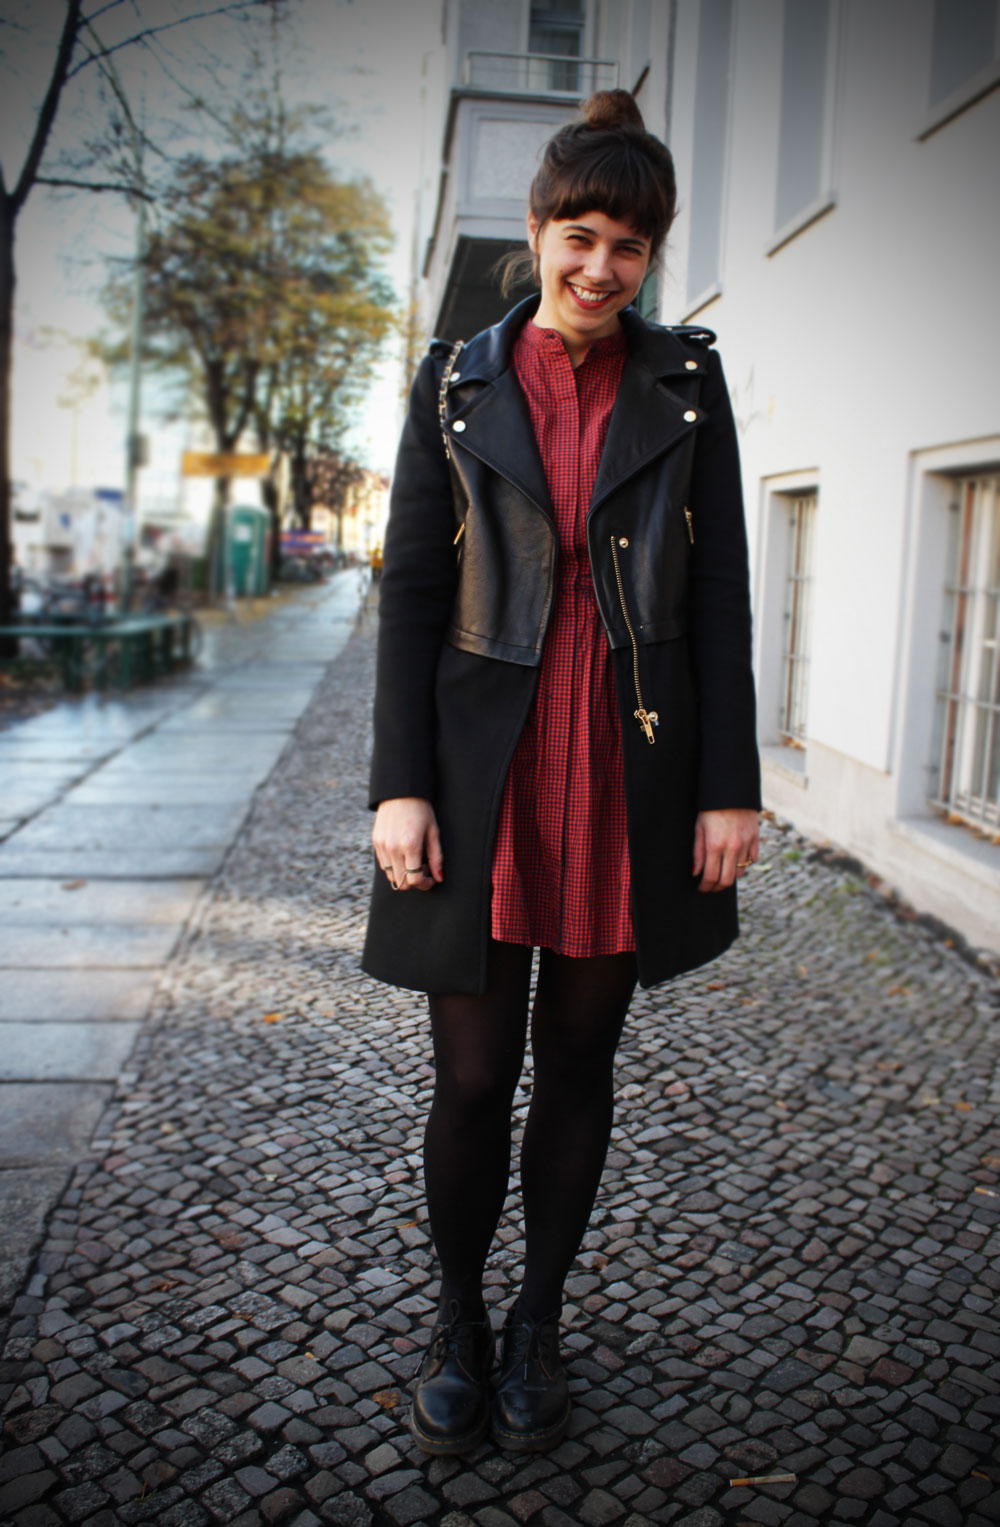 levis made and crafted dress 9 Tagesoutfit: Adieu Tristesse! Und das Levis Red Tab Kleid.